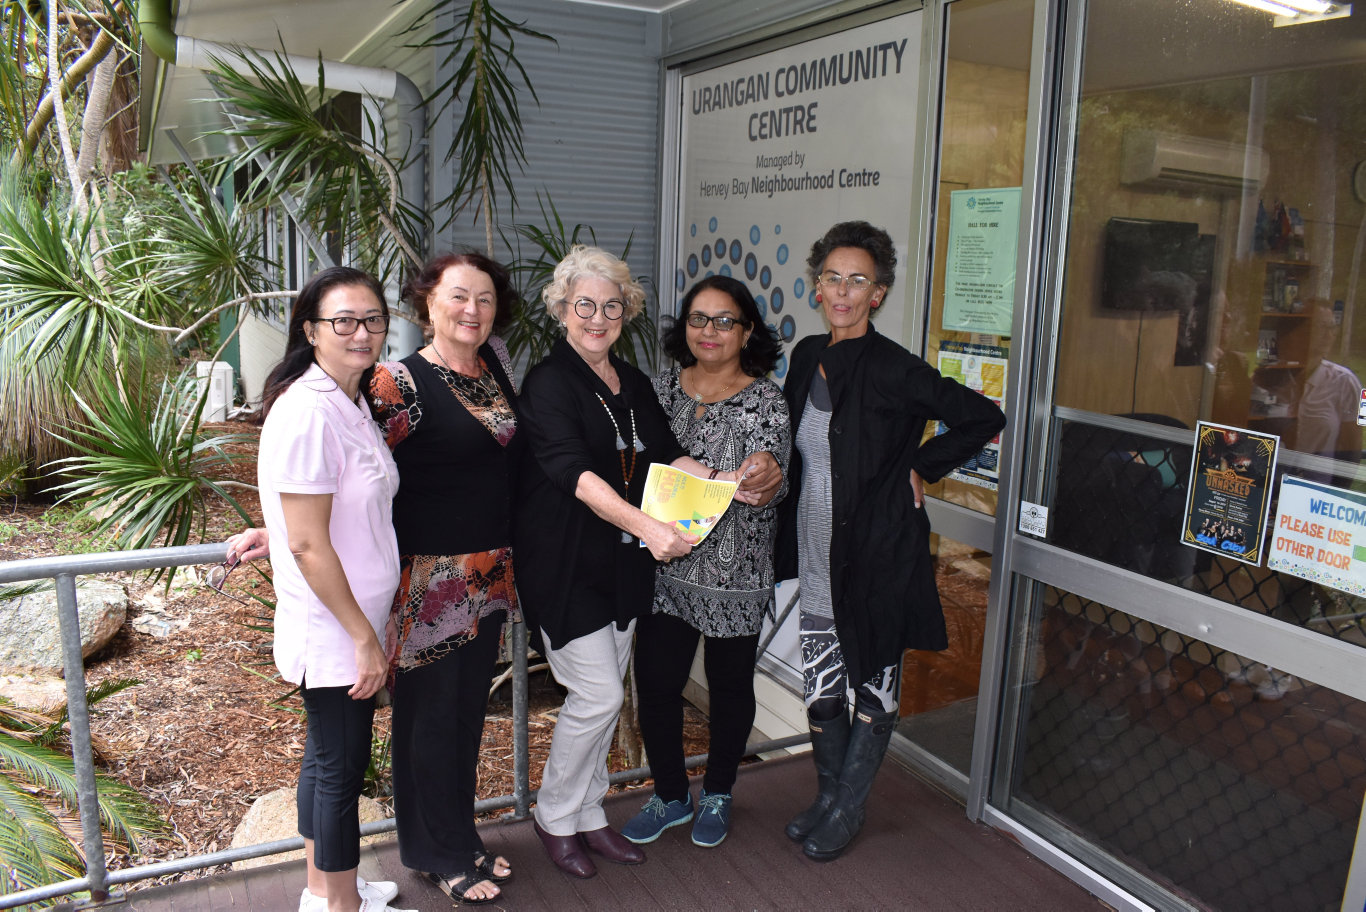 The Urangan Community Centre offers English lessons for migrants. See details on this page.